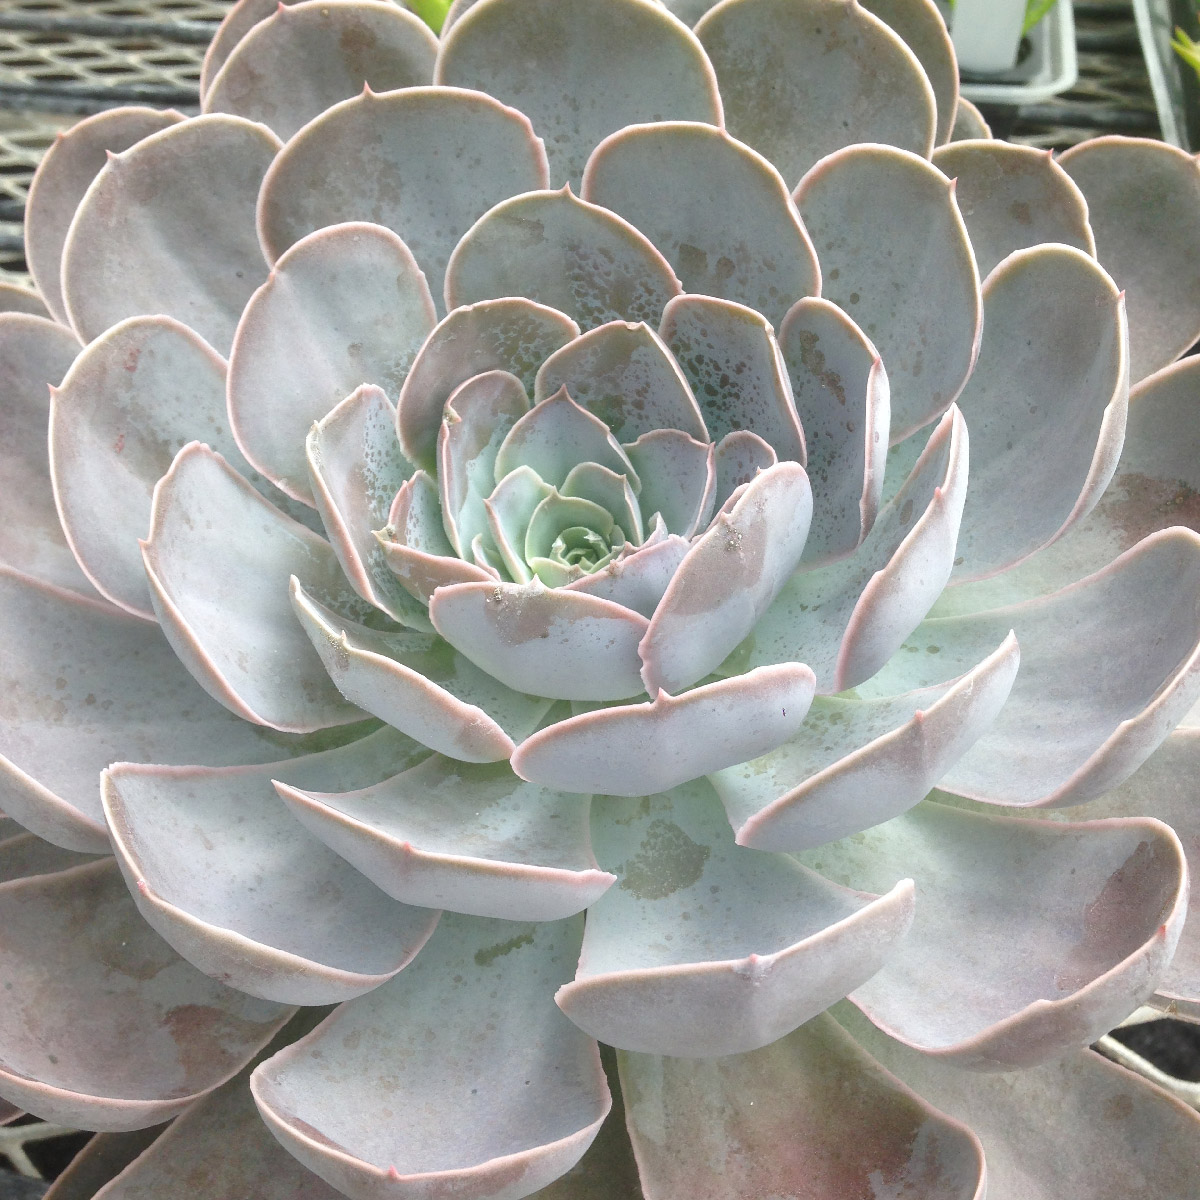 Echeveria Dusty Violet